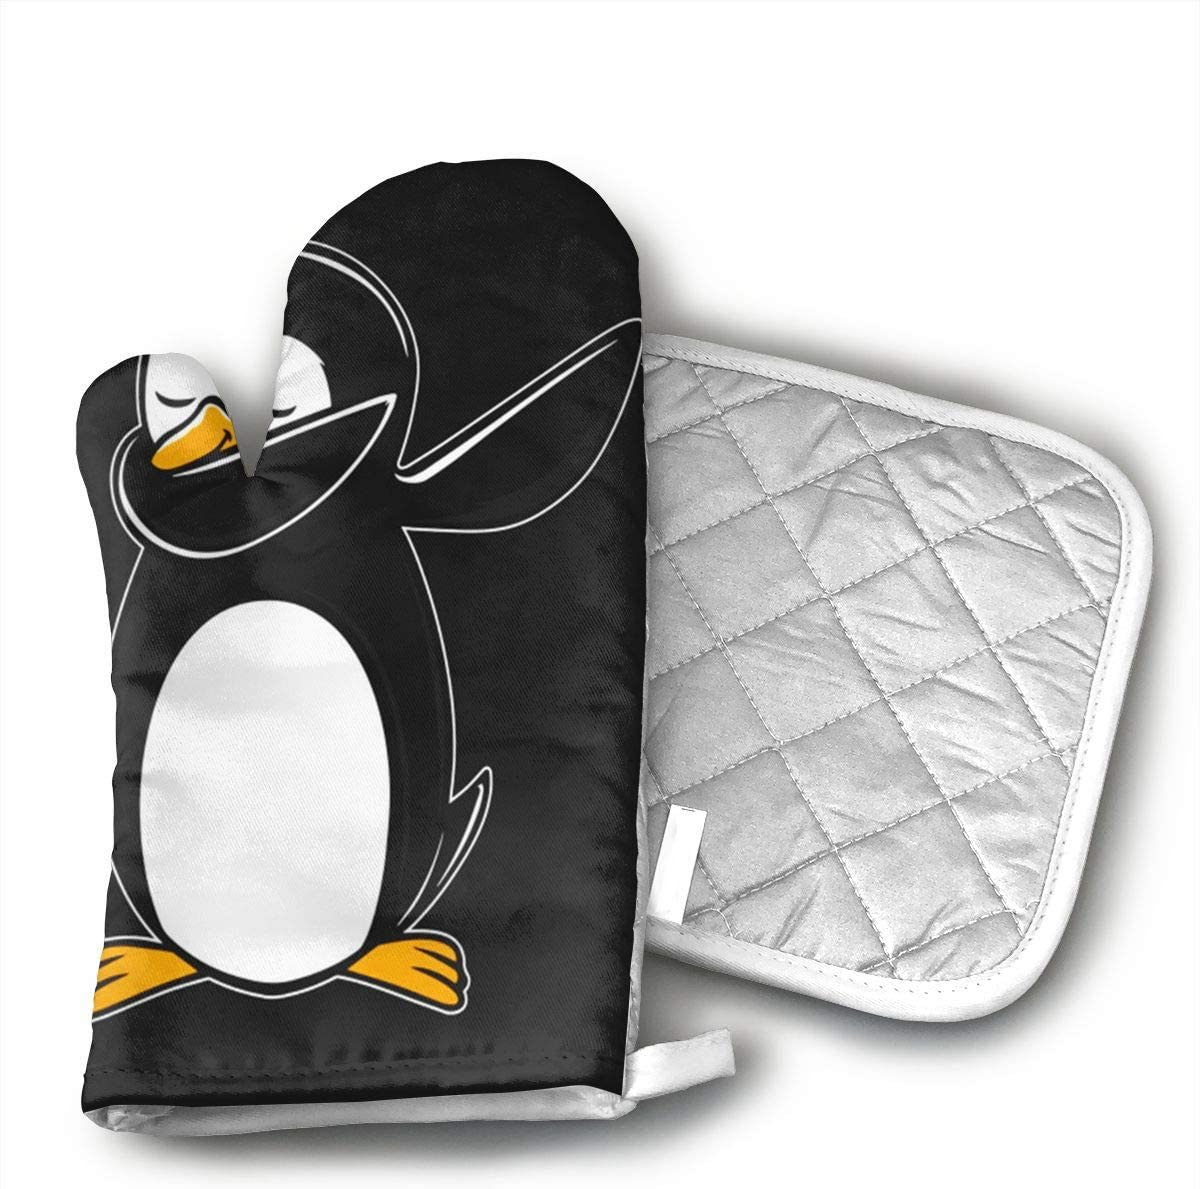 QEDGC Funny Penguin Oven Mitts Non-Slip for Home Kitchen Cooking Barbecue Microwave for Women/Men Machine Washable BBQ